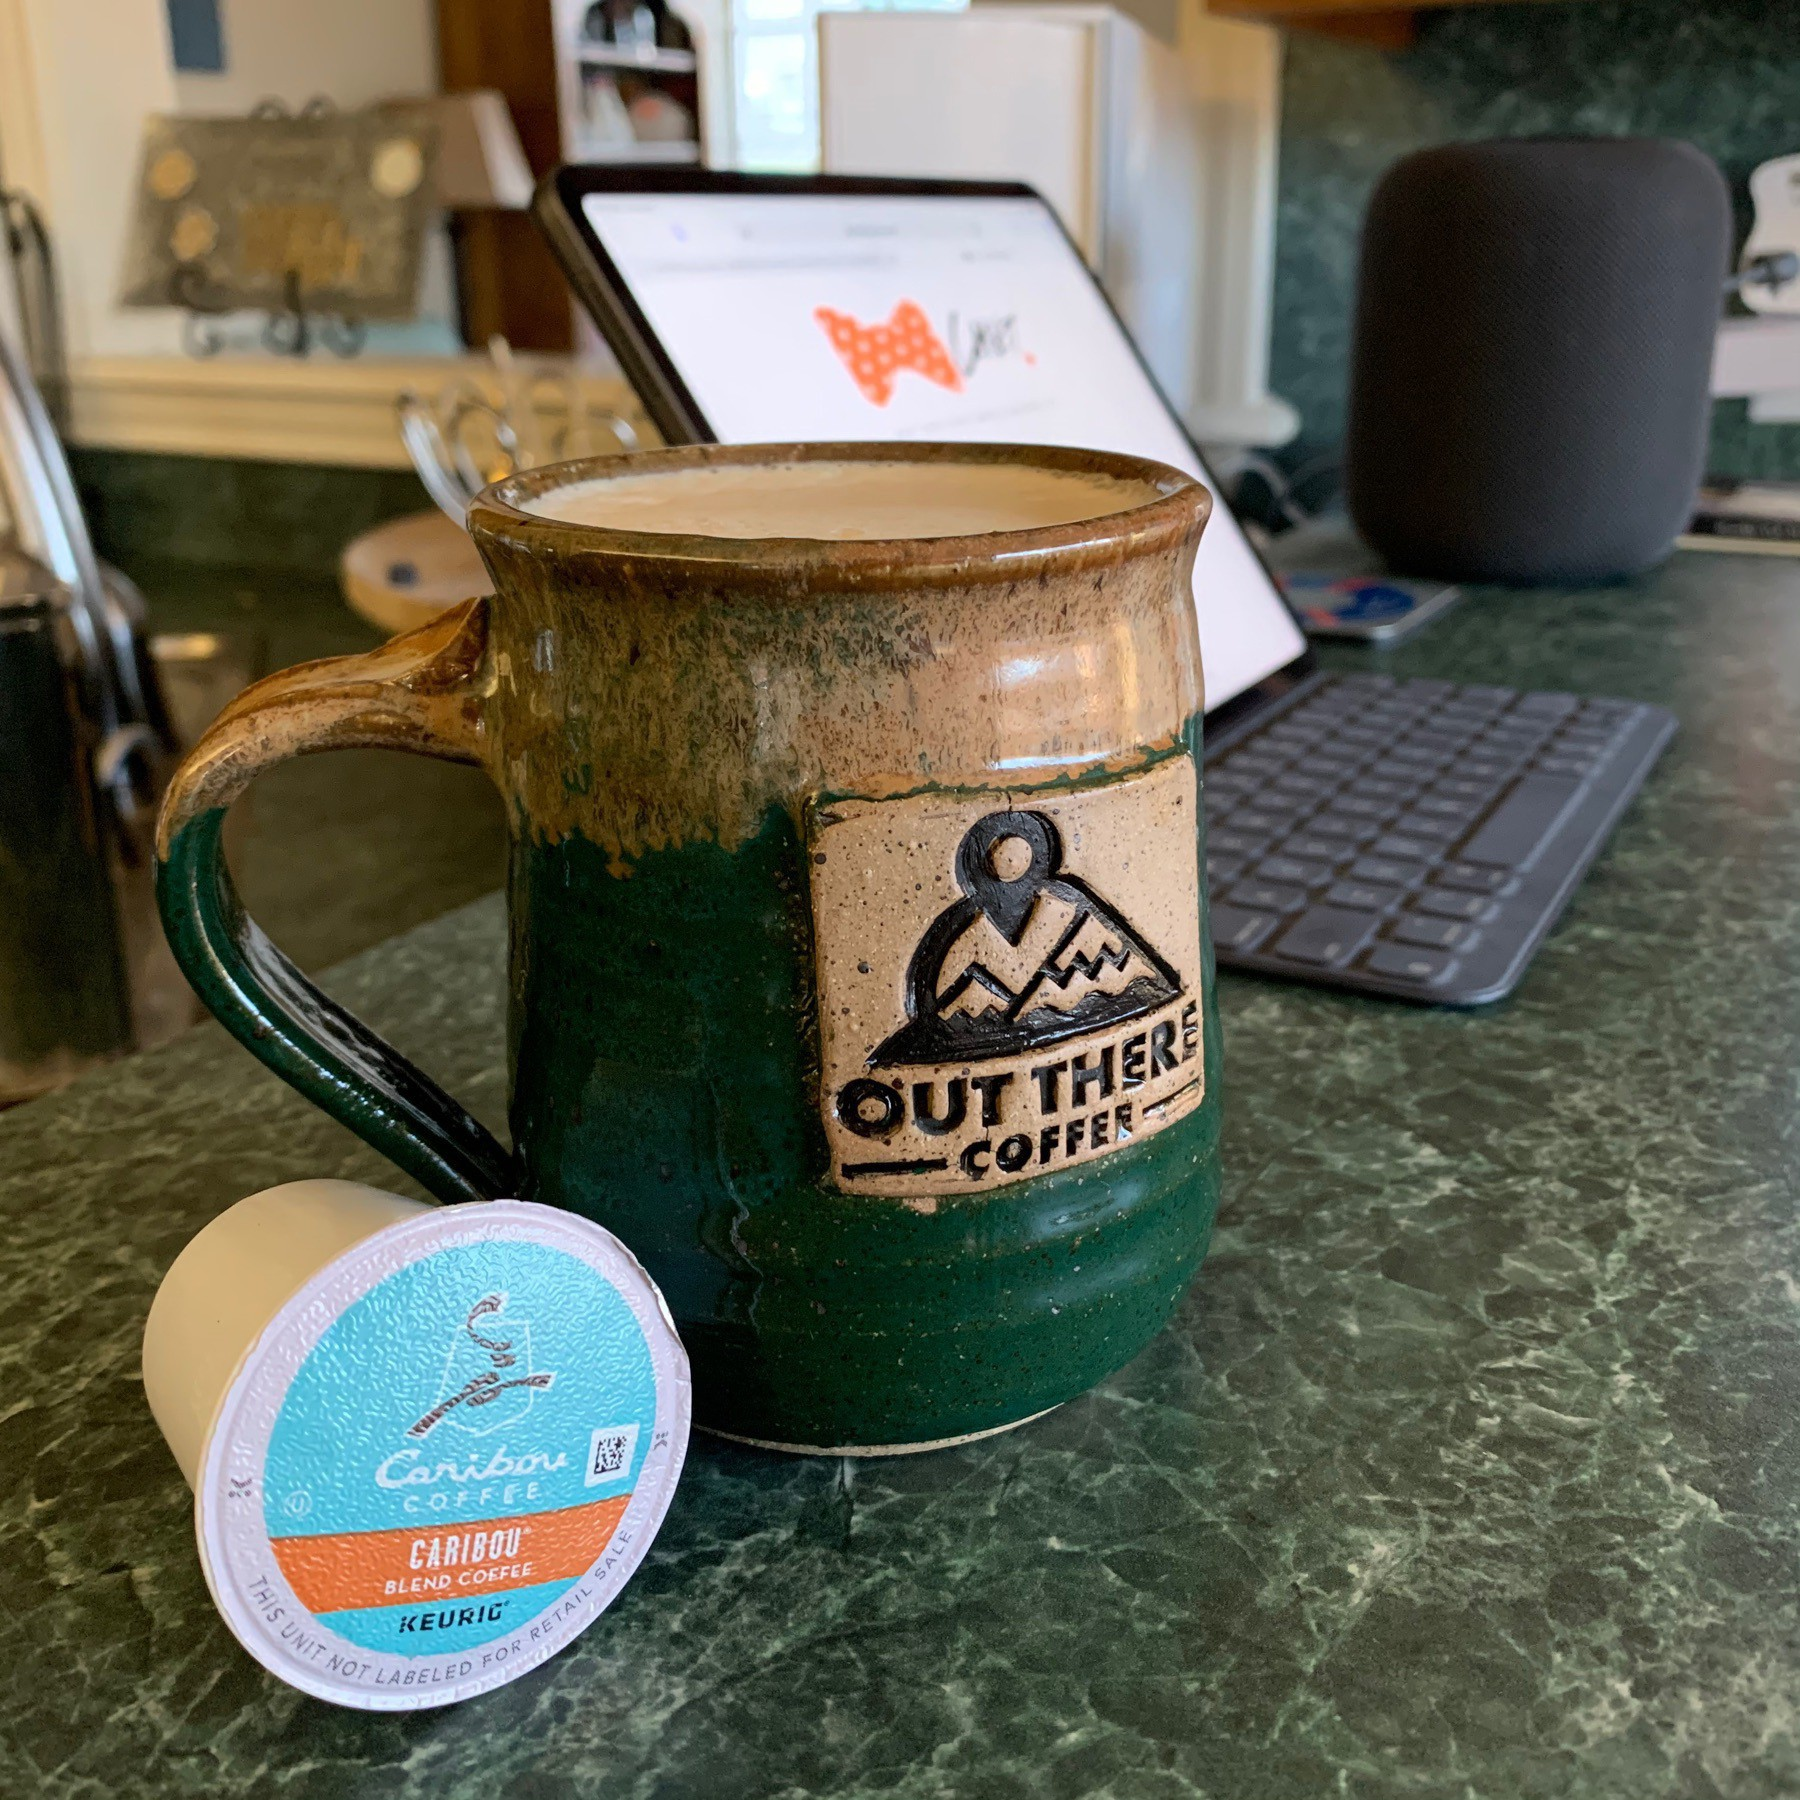 Mug and K Cup sit on a countertop